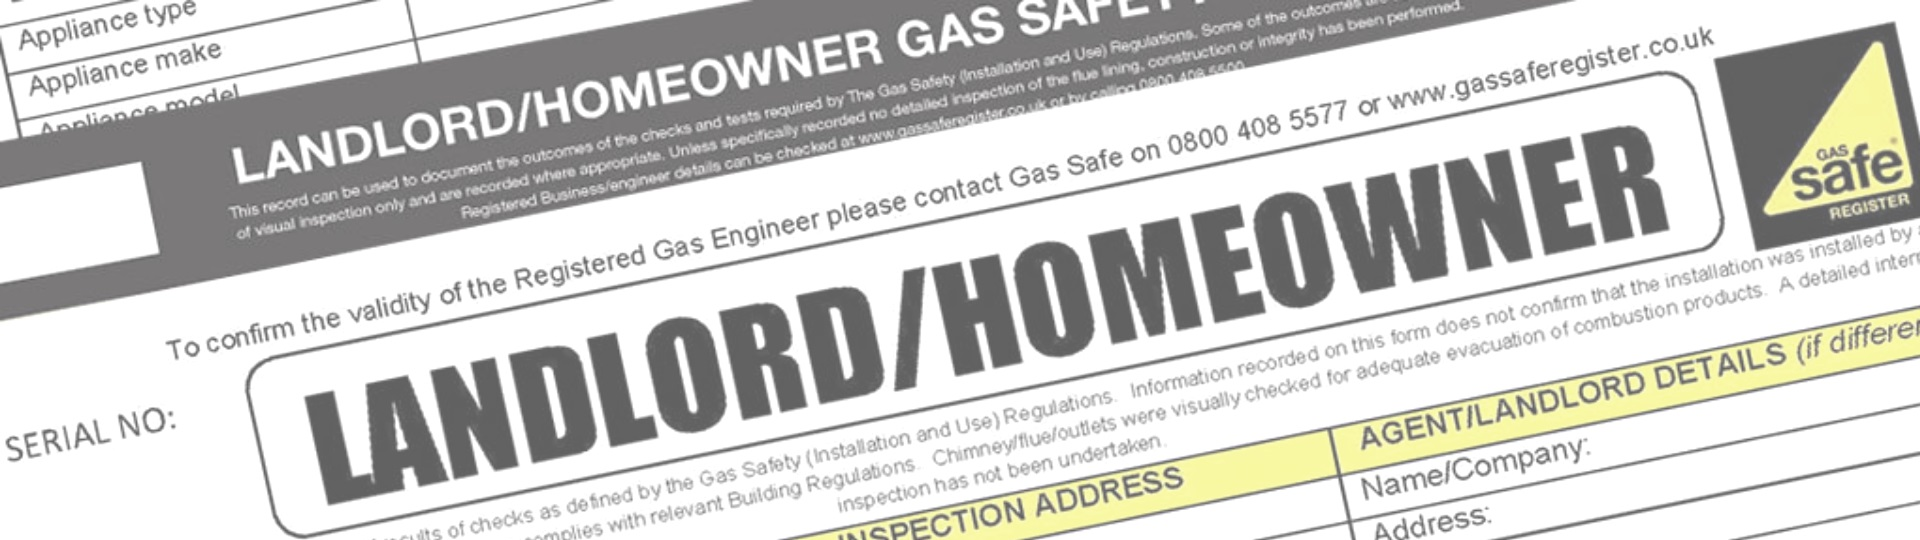 Gas Saftey Certificates Canons Marsh